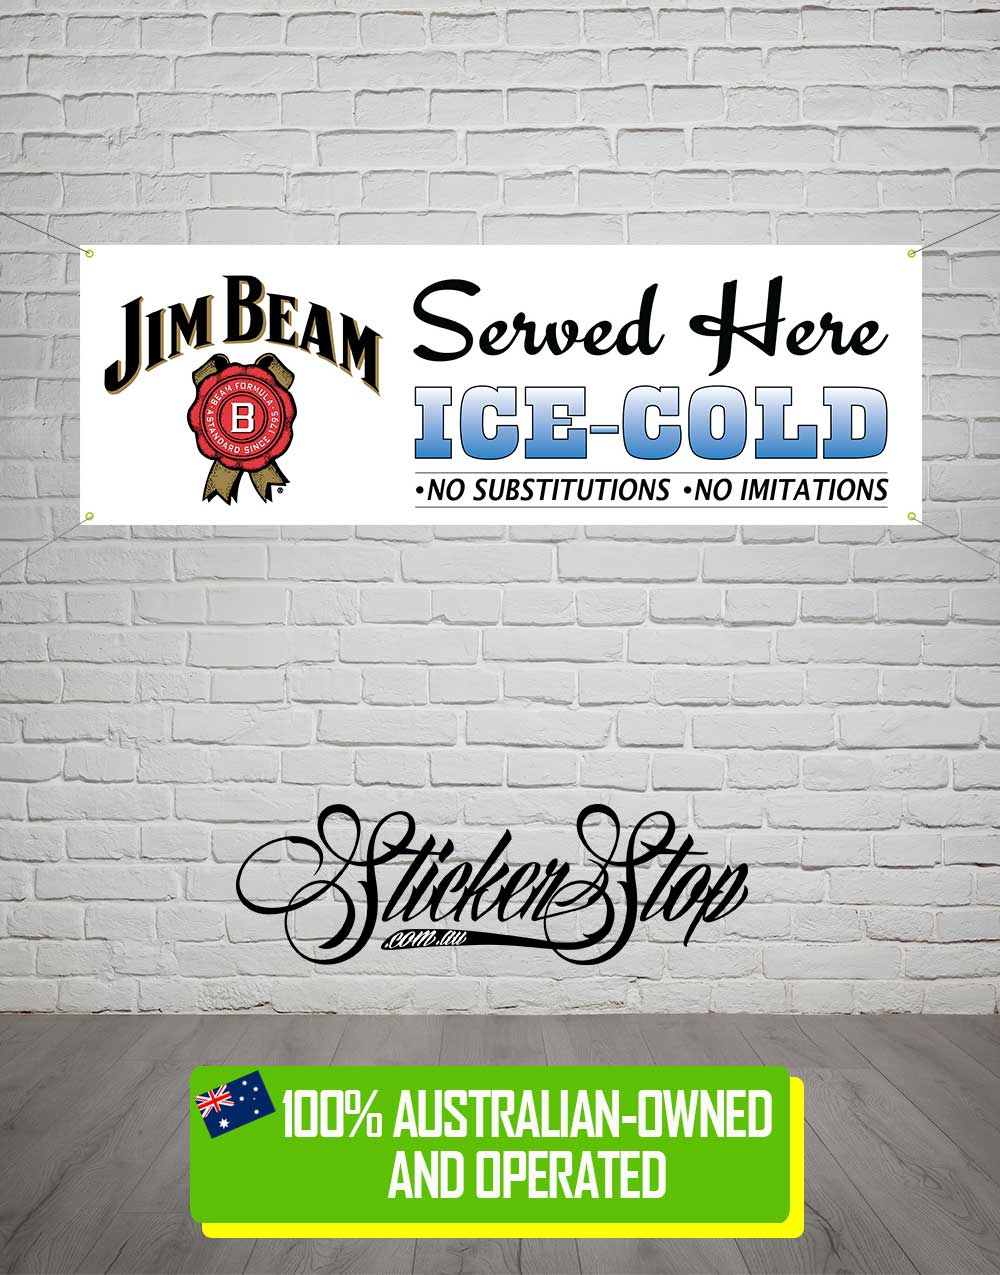 Jim Beam Banner for Mancave, Garage, Shed or Workshop